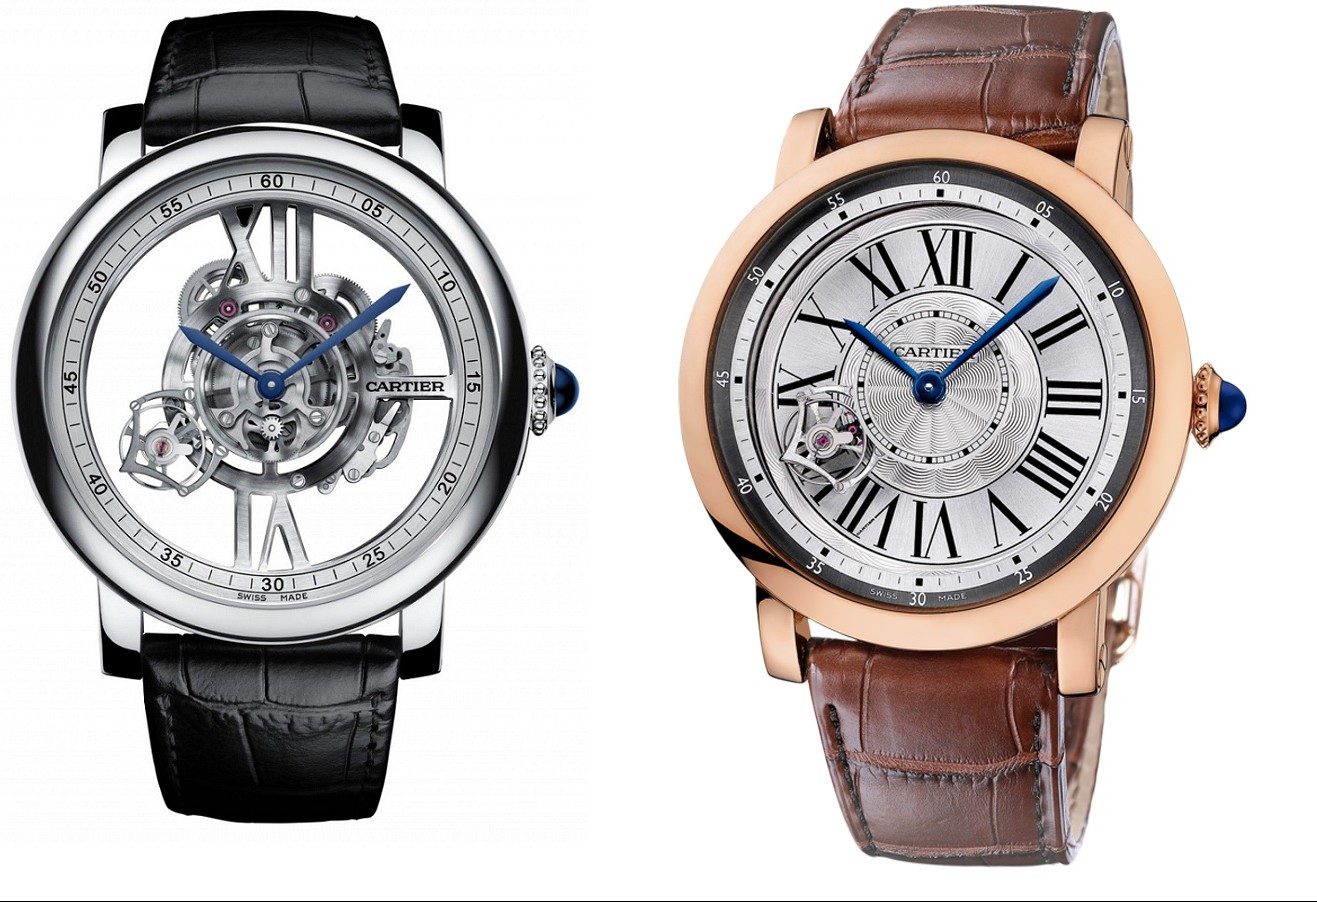 Comparison between the new Rotonde de Cartier Astrotourbillon Skeleton (left) and a previous version, reference W1556205